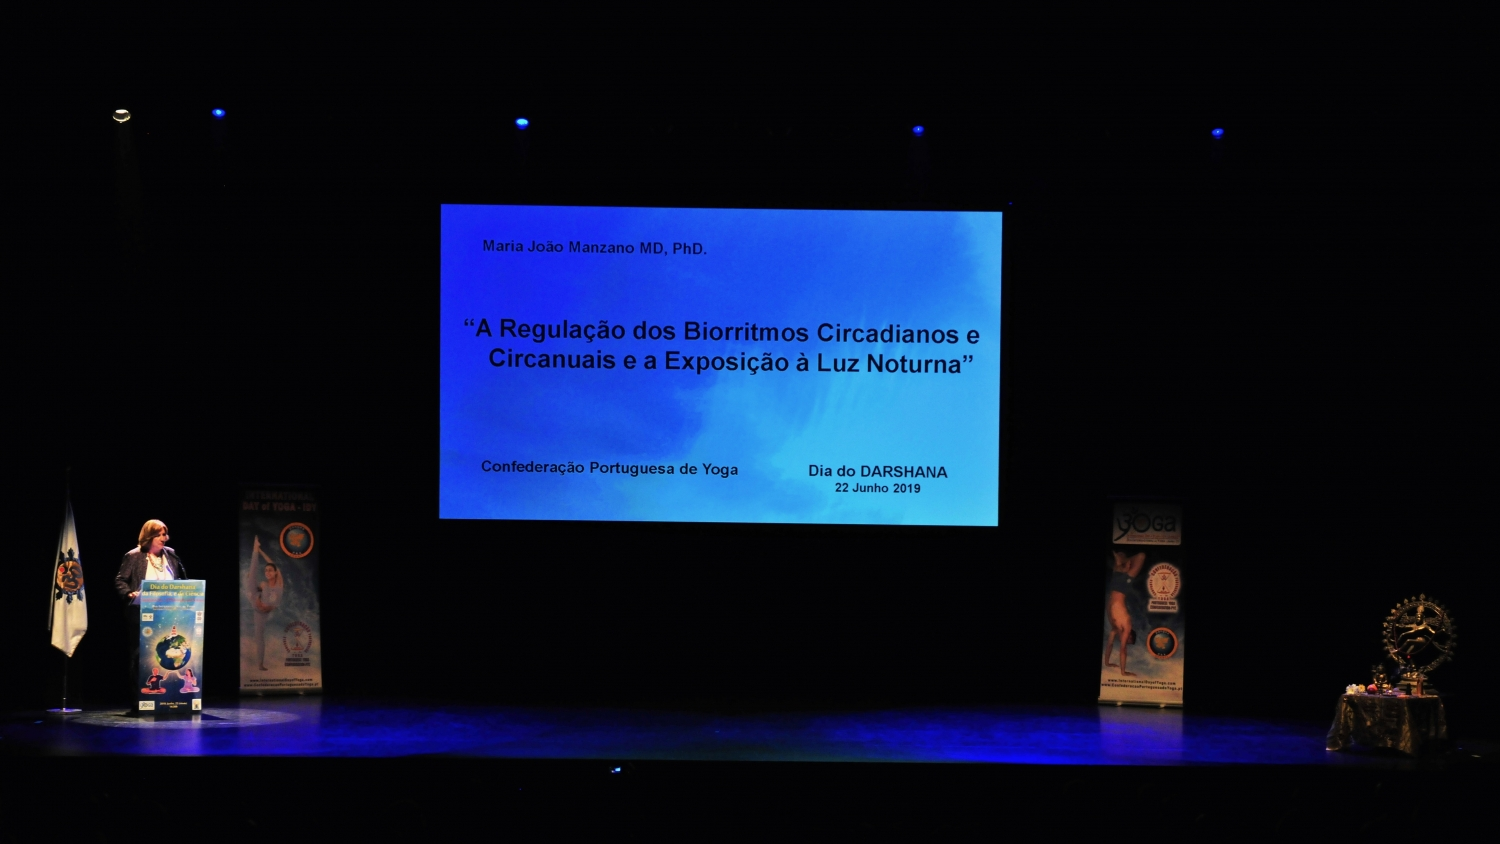 Lecture: 'The Regulation of the  Circadian and Circannual Biorythms and the Exposure to Night Light' - Maria João Manzano MD, PhD. Director of the Health Service of the Universitary Hospital Centre of  Central Lisboa